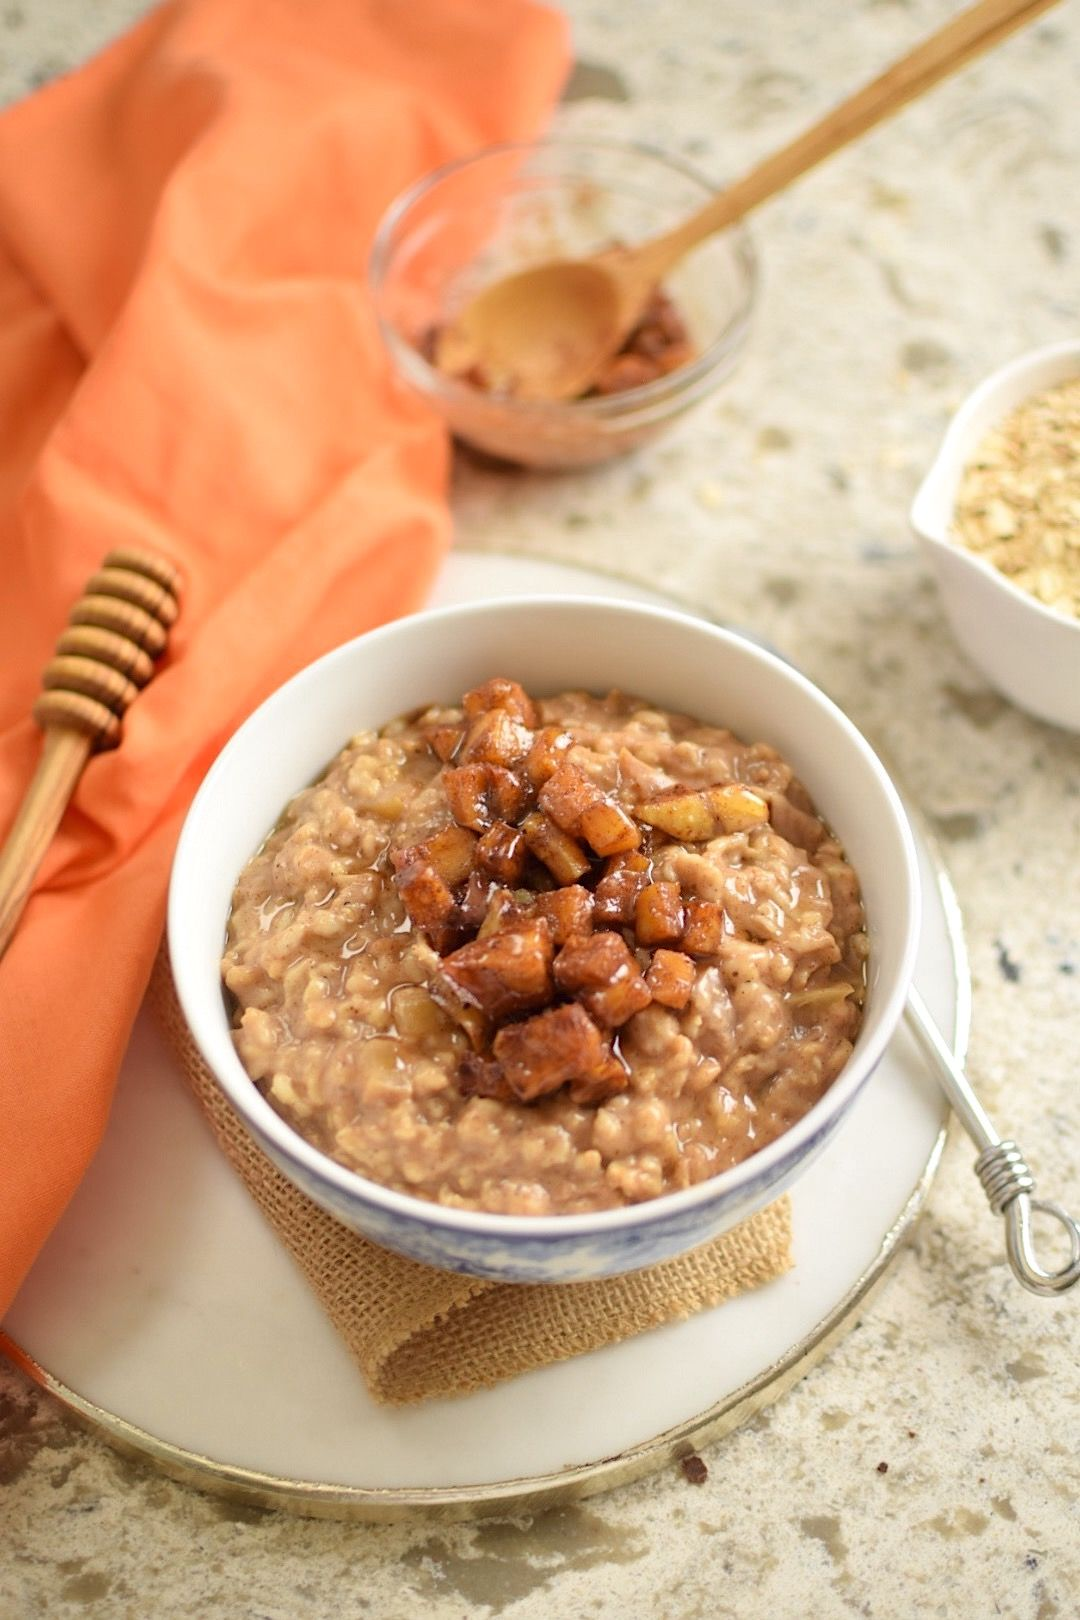 Caramelized apple glutenfree rolled oats recipe with